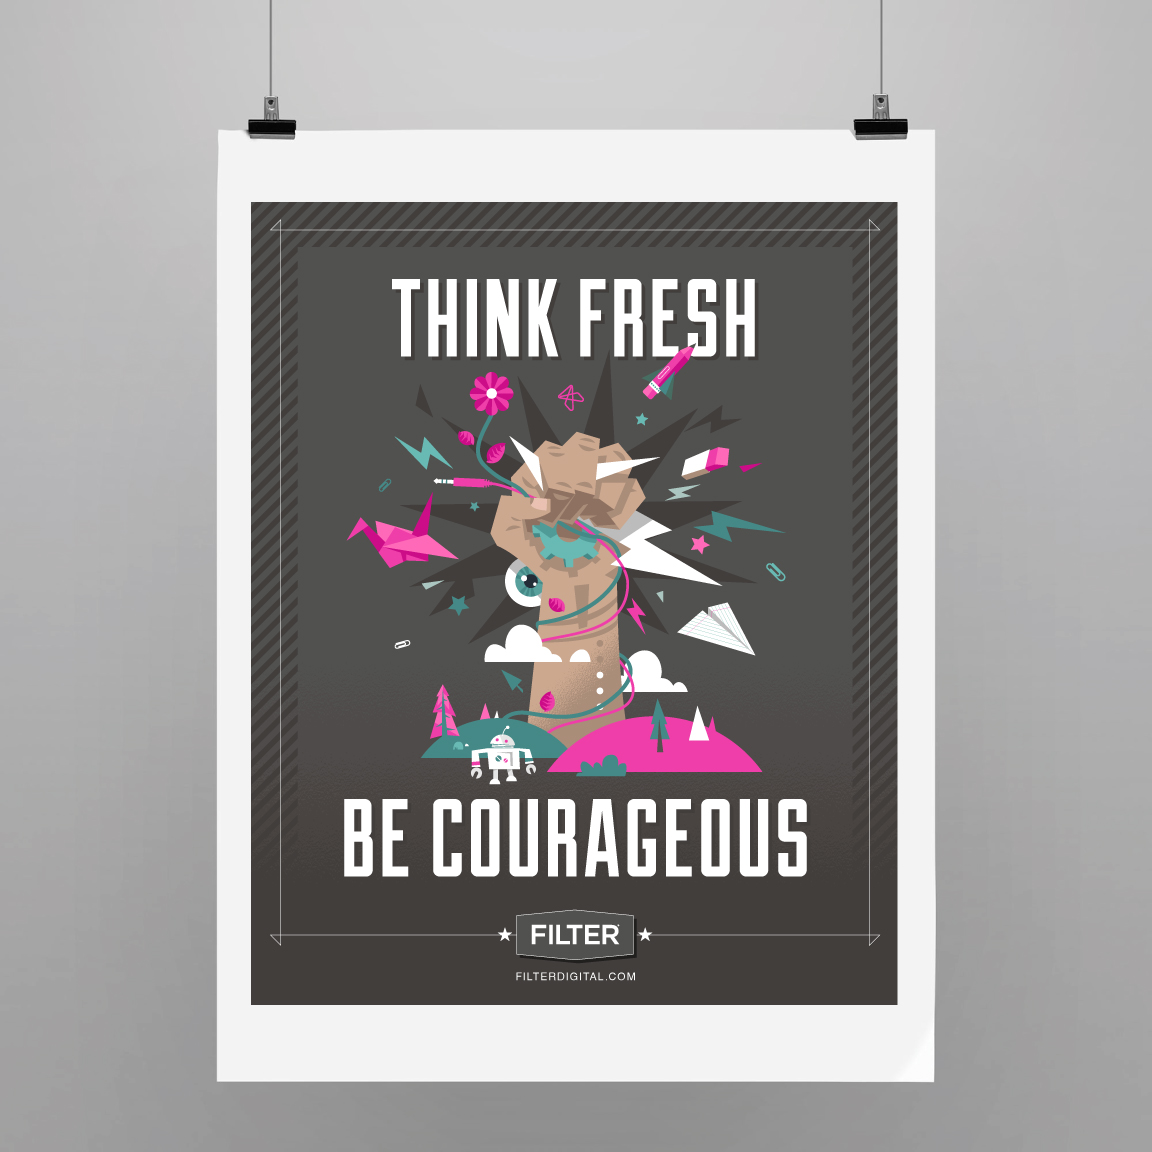 Think fresh. Be courageous.